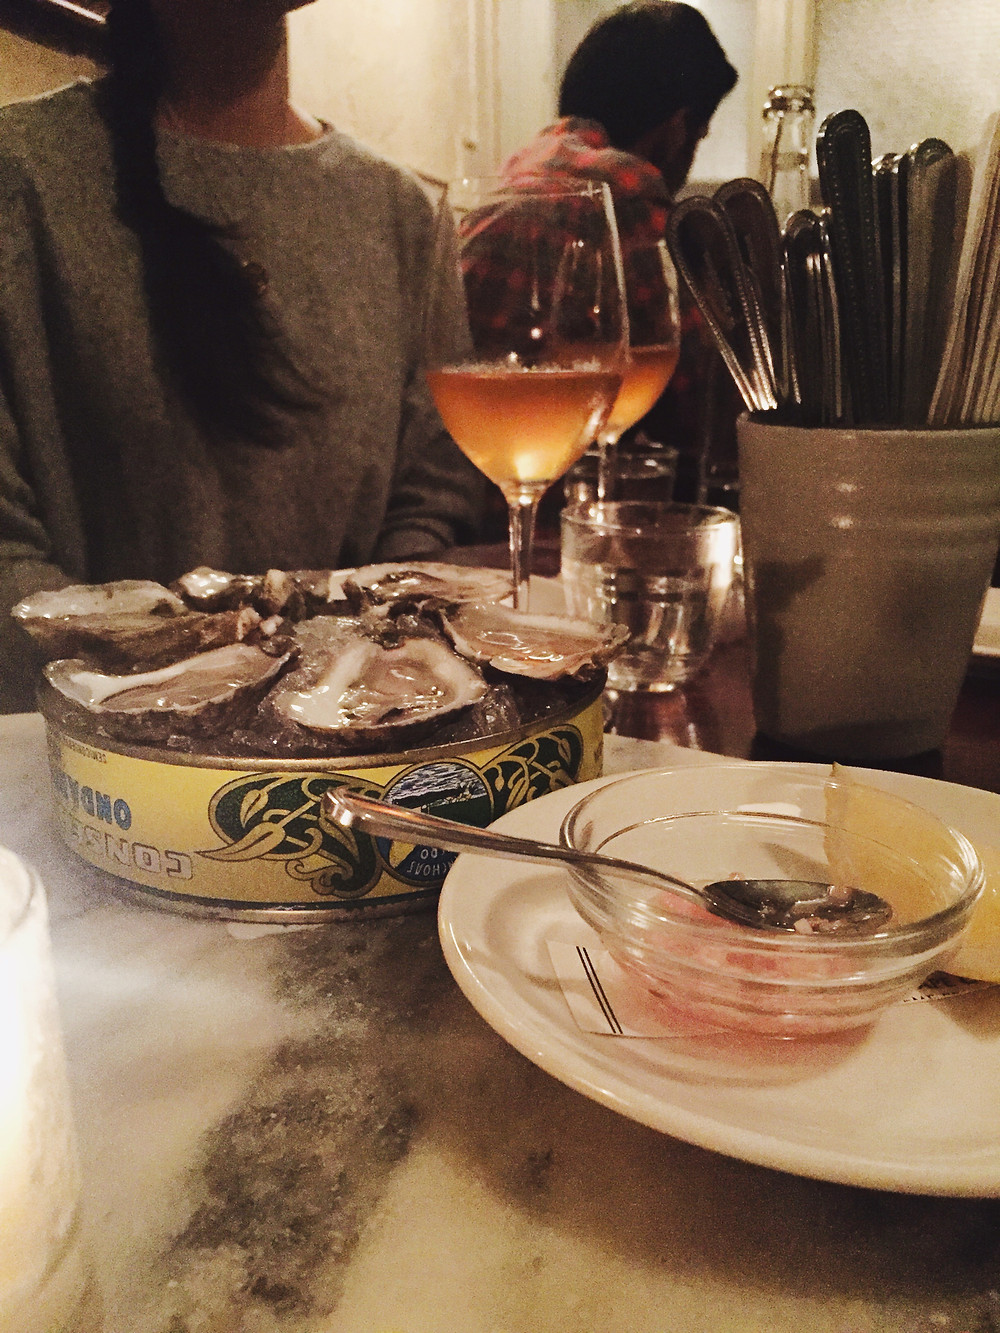 oysters and orange wine at Achille's Heel